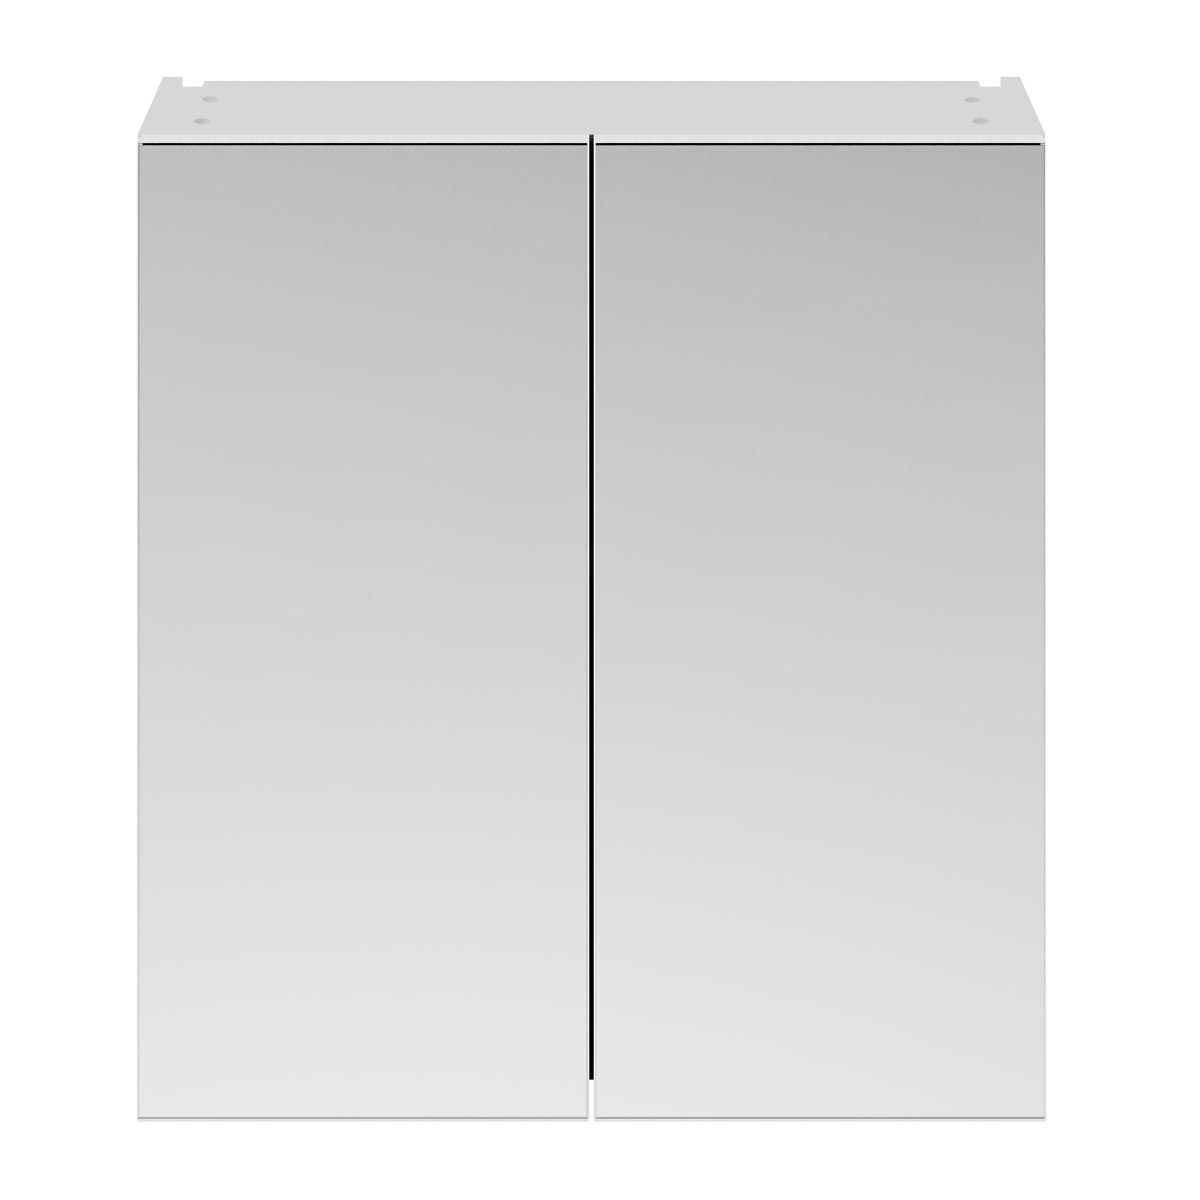 Nuie Athena Gloss Grey Mist Double Mirrored Bathroom Cabinet 800mm